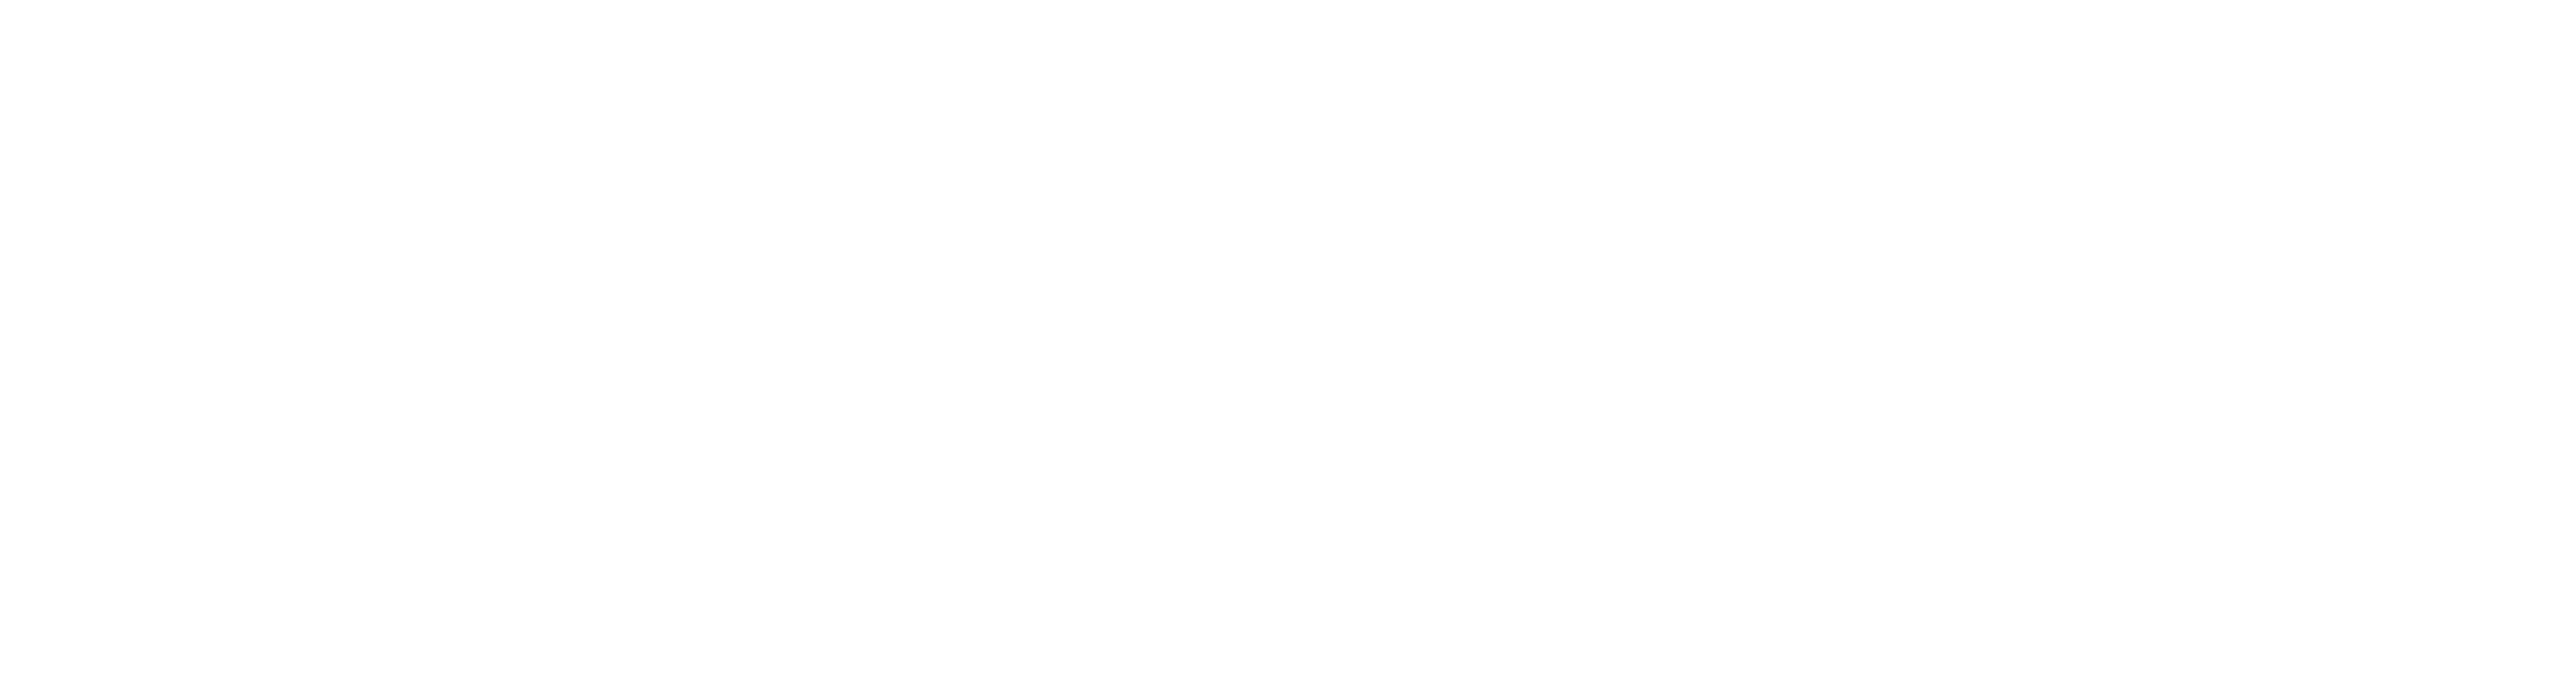 Winter Apartment Special at 4000 Hulen Urban Apartment Homes in Fort Worth, TX